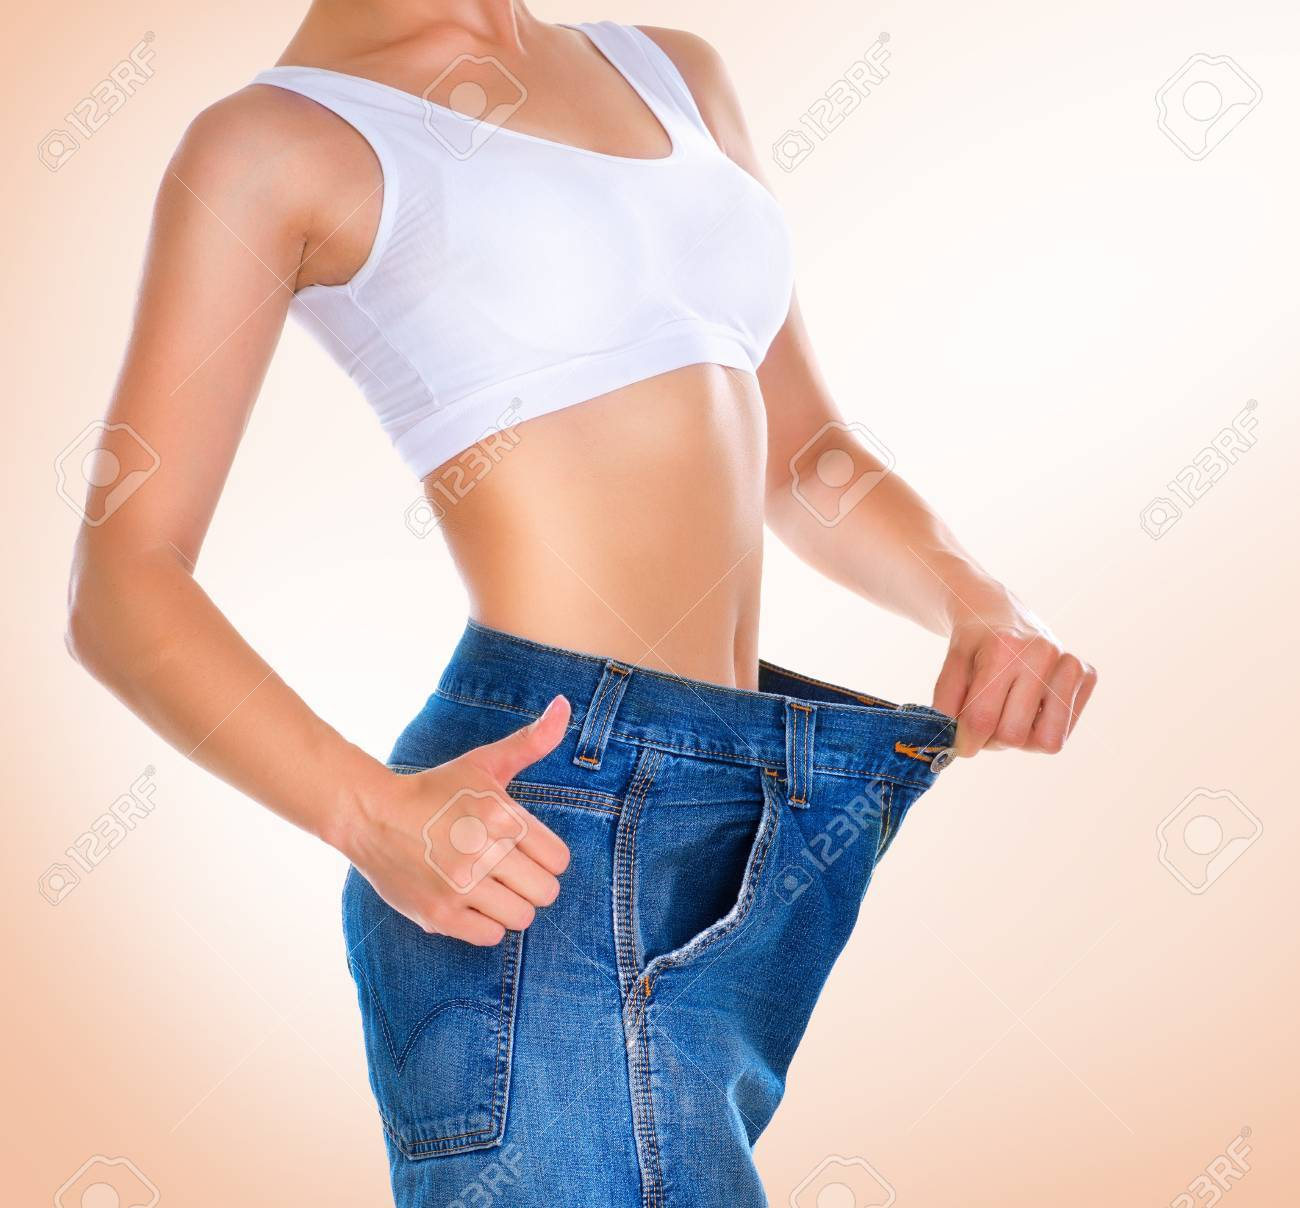 Weight loss  Healthy lifestyles concept Stock Photo - 14022288